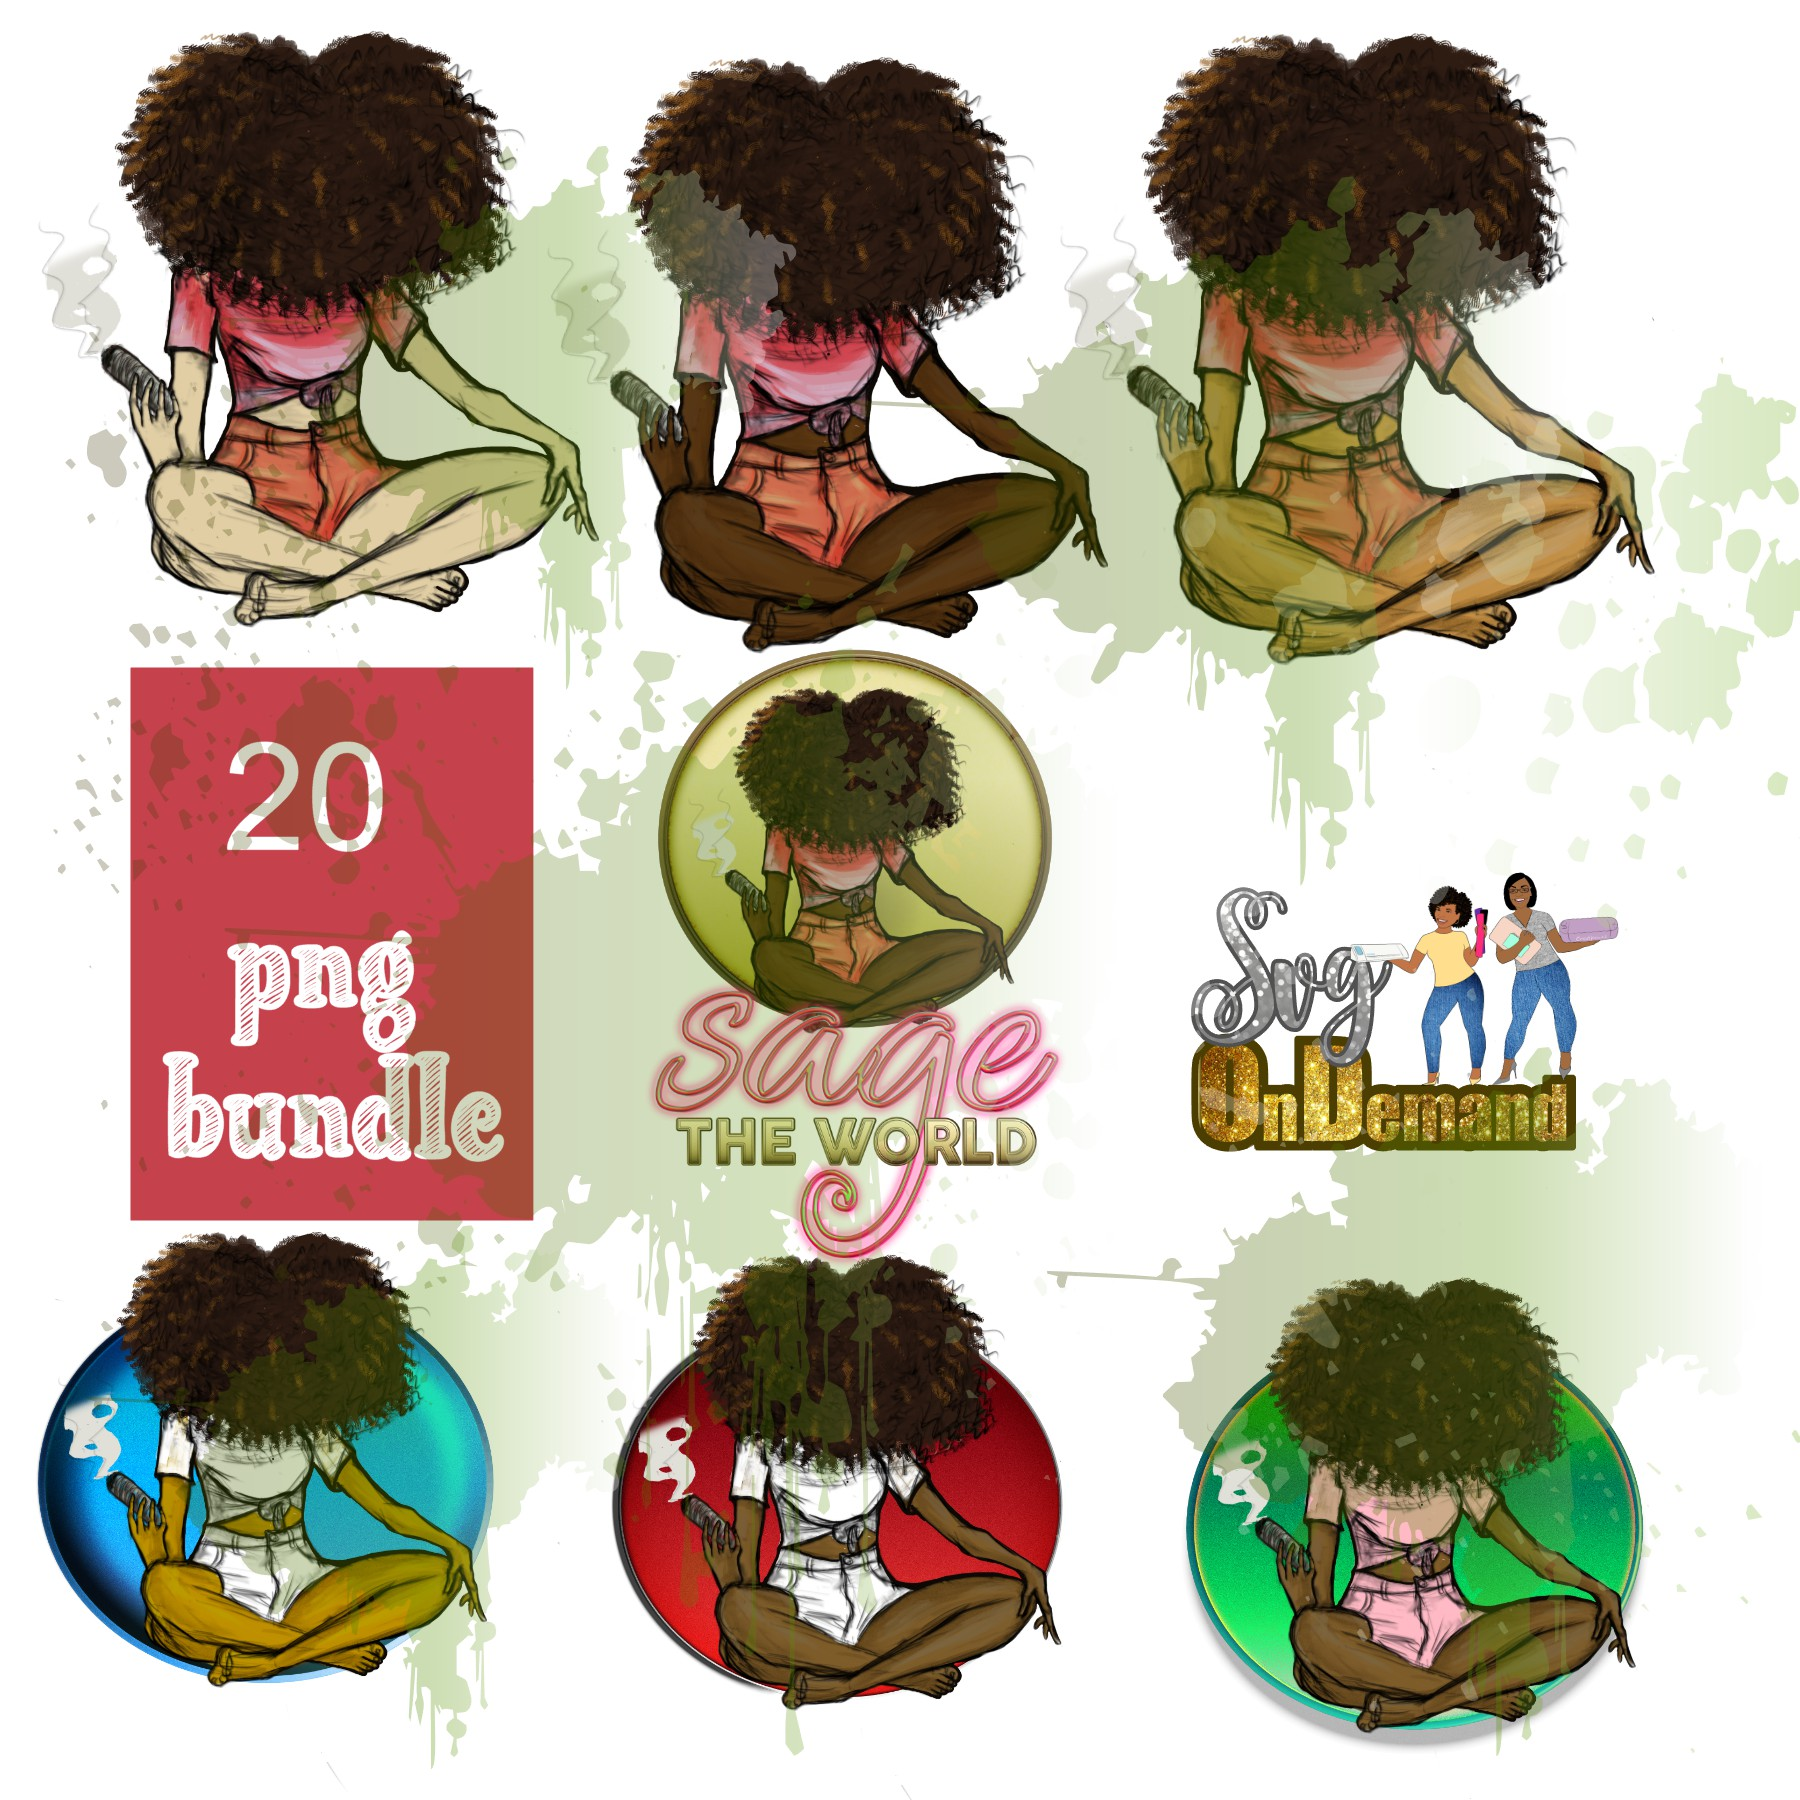 SAGE THE WORLD GIRL! PNG MEGABUNDLE with bonus MOCKUPS